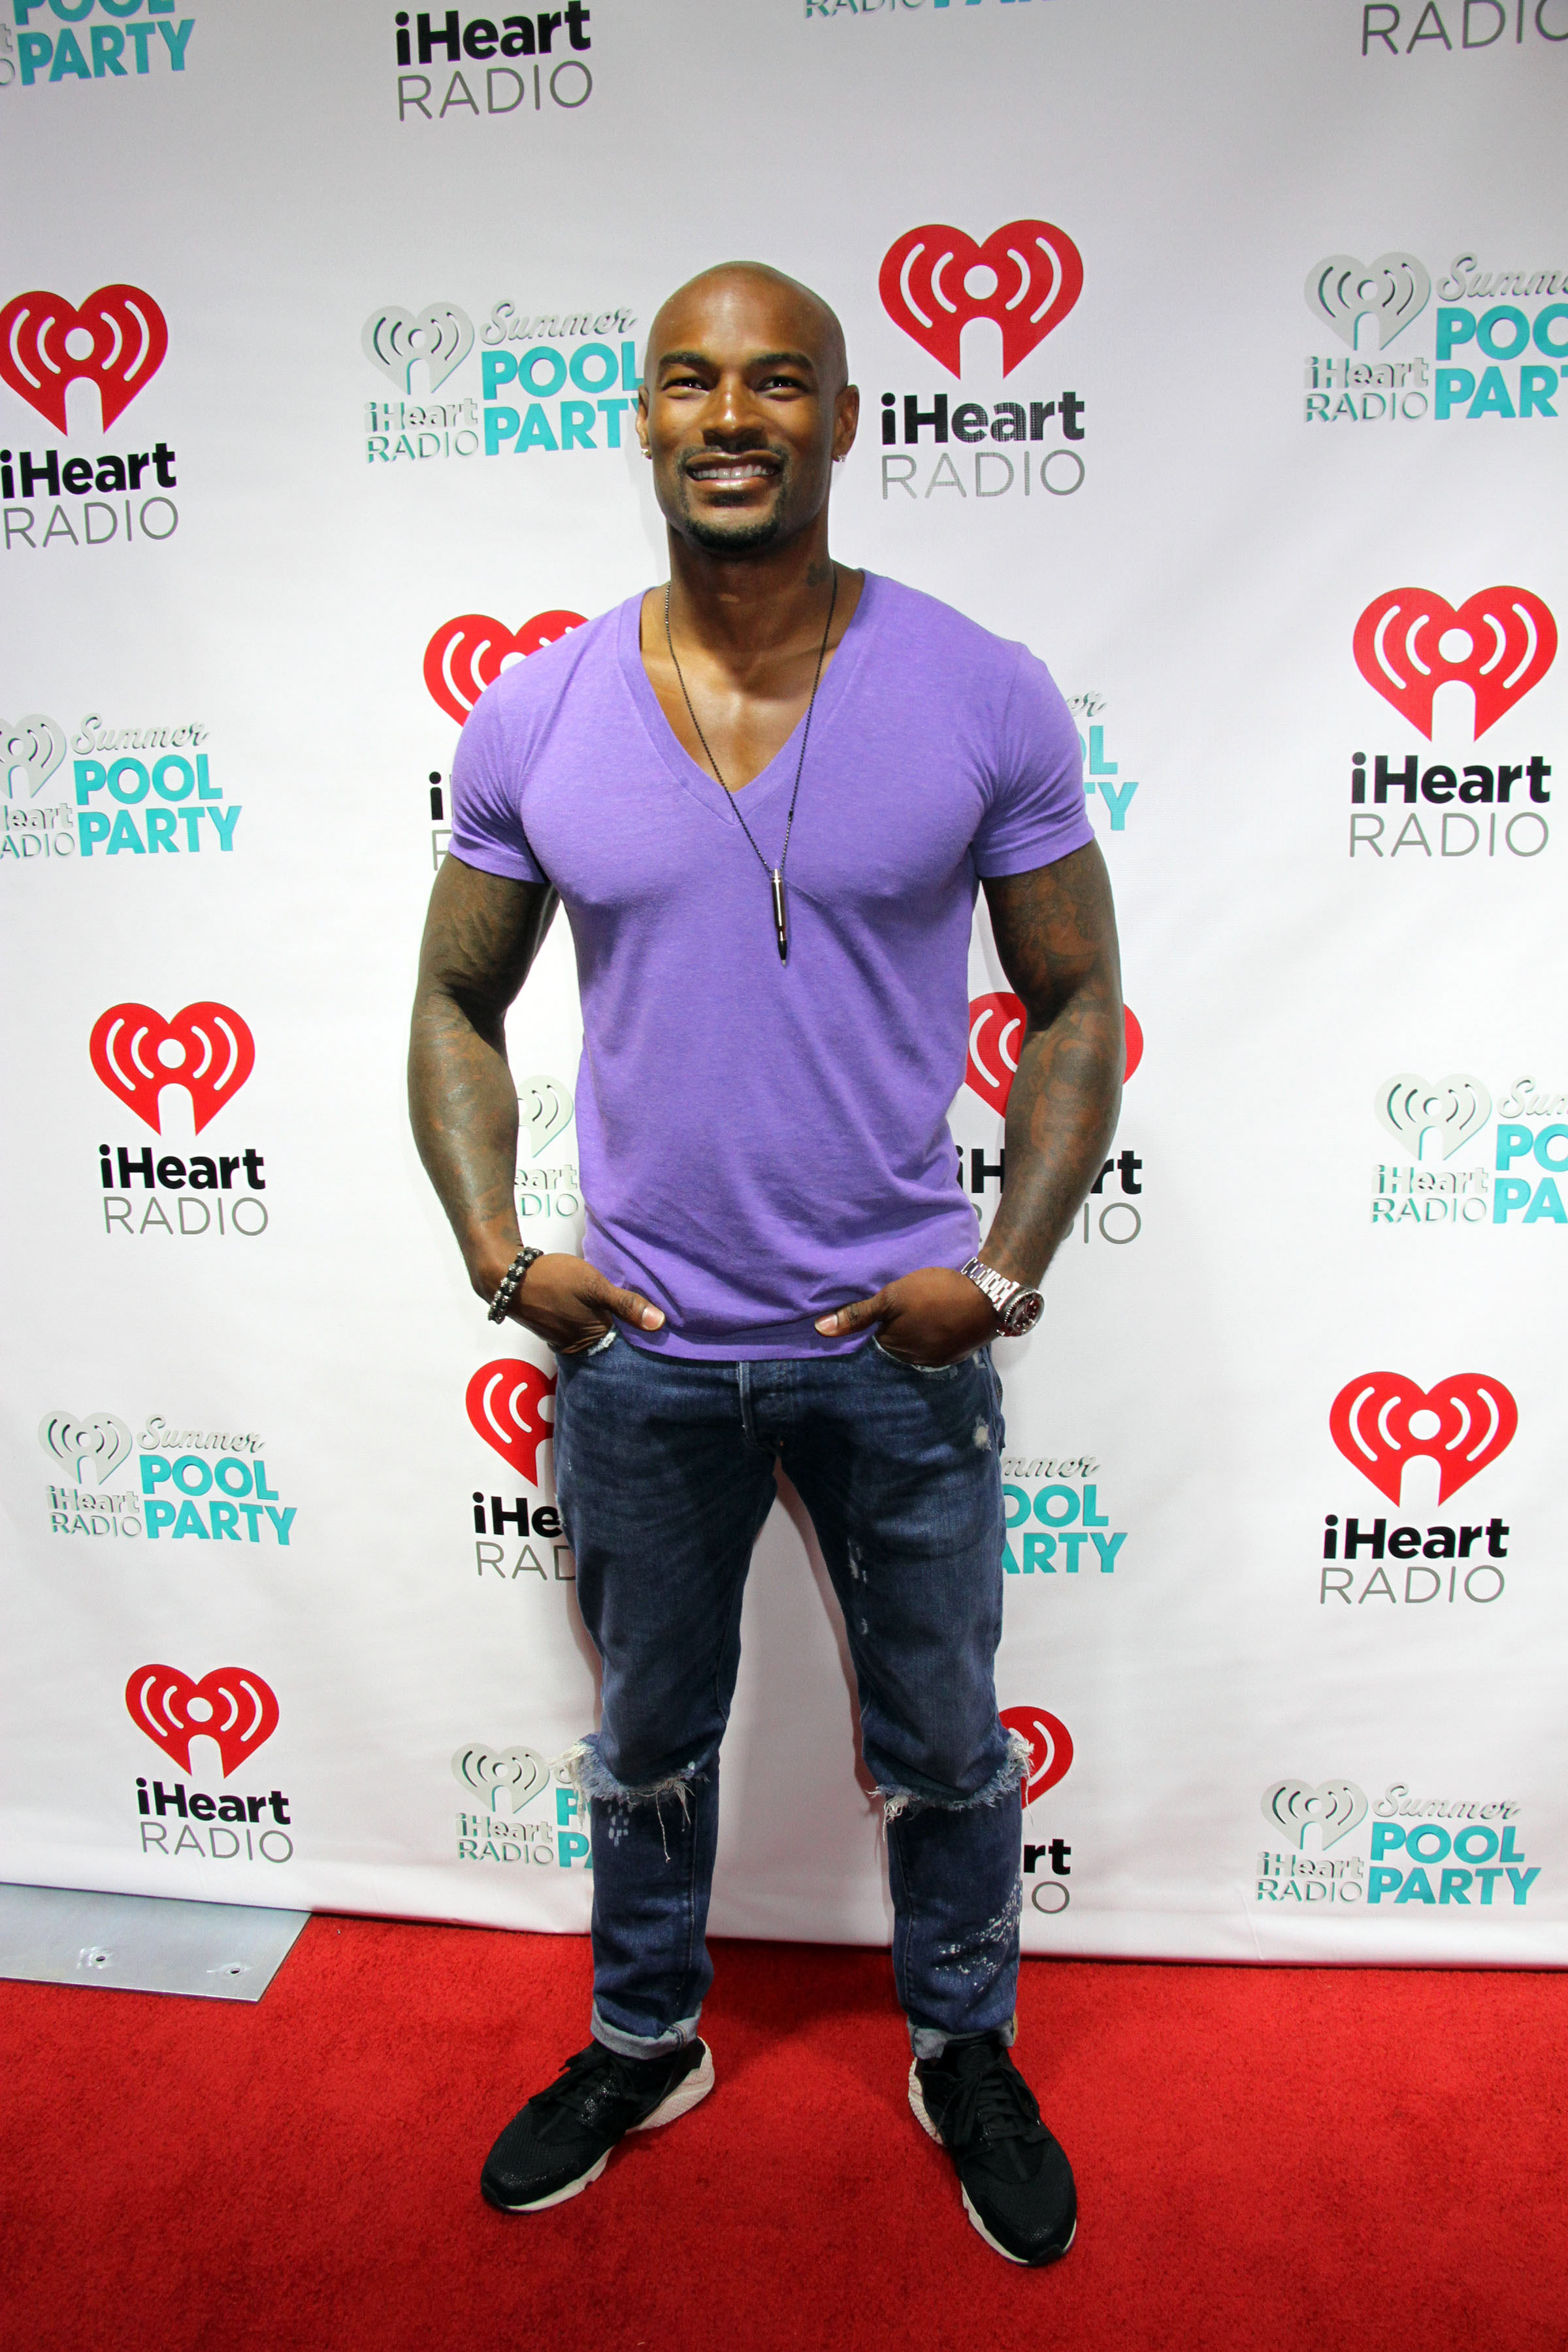 05/30/2015 - Tyson Beckford - 2015 iHeartRadio Summer Pool Party at Caesars Palace Pool in Las Vegas - Arrivals - Caesars Palace Pool at Caesars Palace Hotel & Casino - Las Vegas, NV, USA - Keywords: Vertical, Party, Social Event, Nevada, Red Carpet Arrival, Swimming Pool, Person, Music, Arts Culture and Entertainment, Celebrity Orientation: Portrait Face Count: 1 - False - Photo Credit: PRN / PRPhotos.com - Contact (1-866-551-7827) - Portrait Face Count: 1